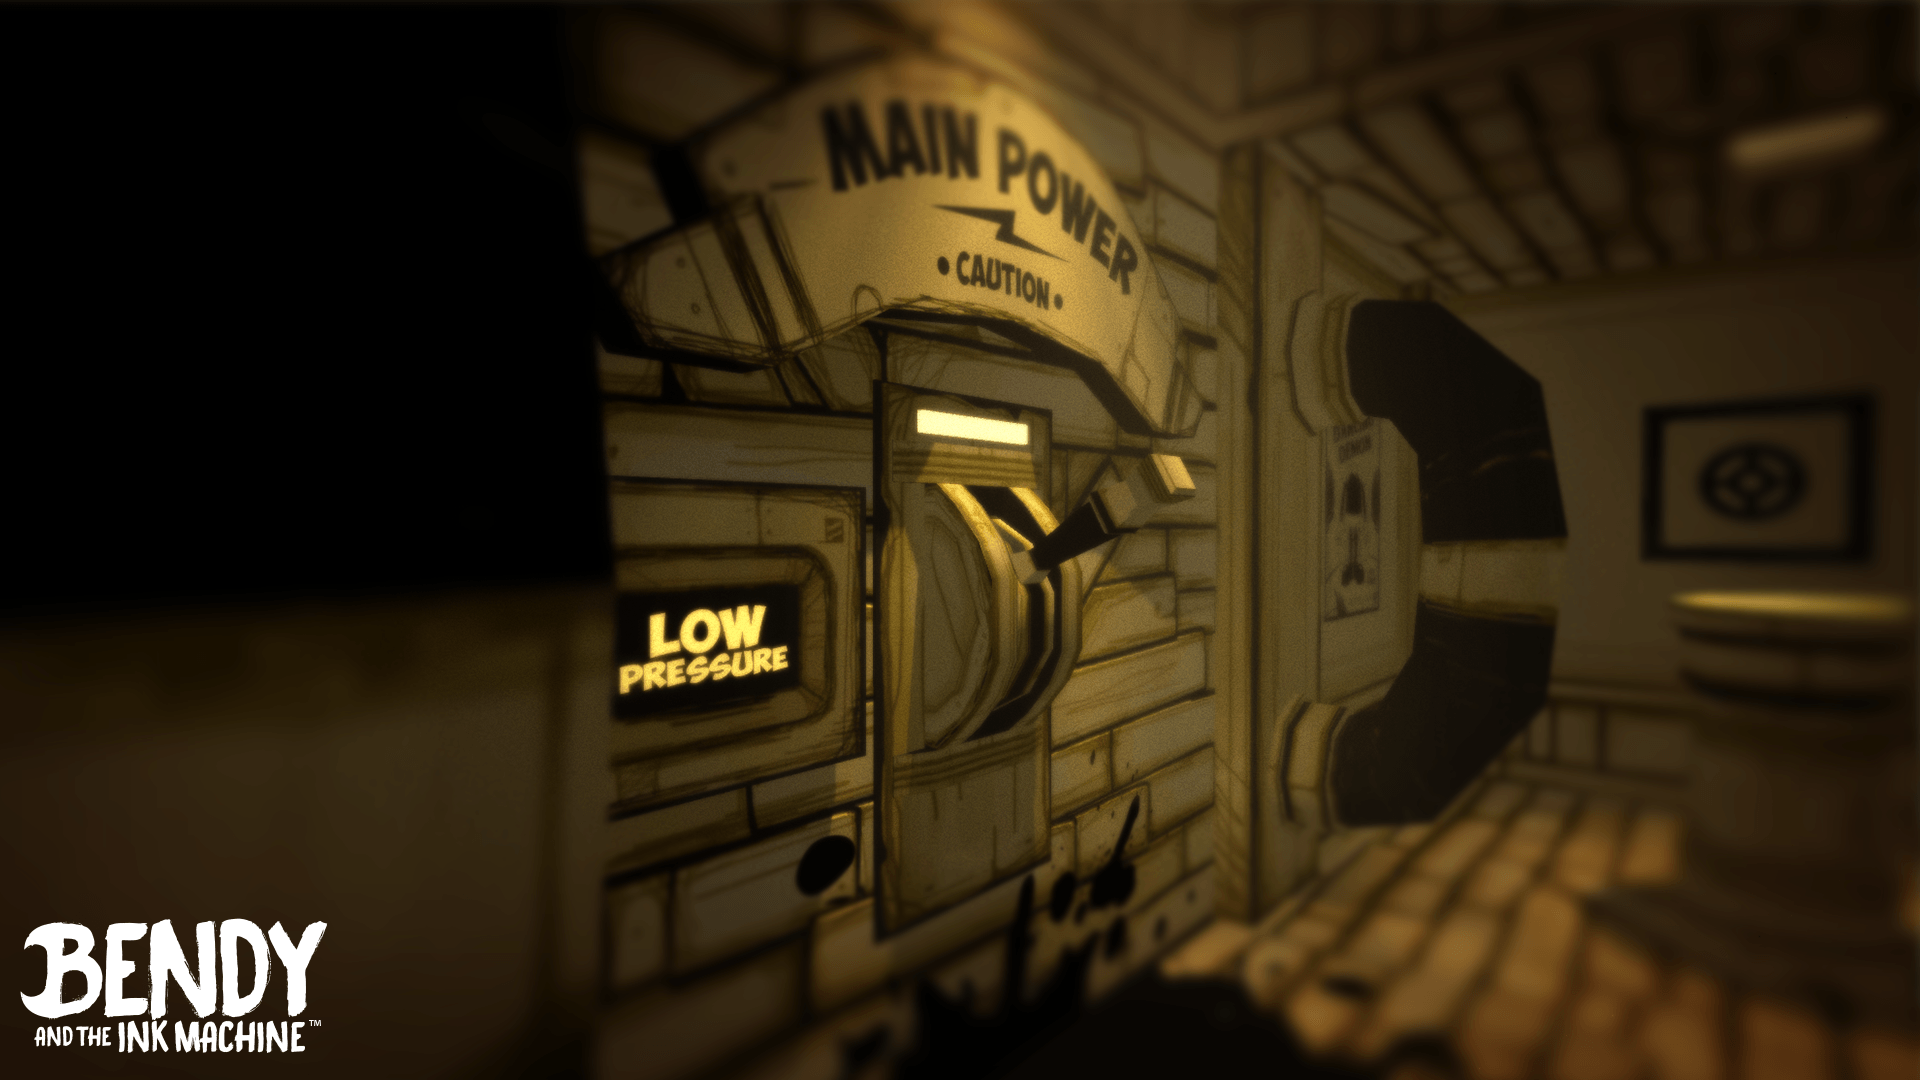 Bendy And The Ink Machine Hd Wallpaper Background Image